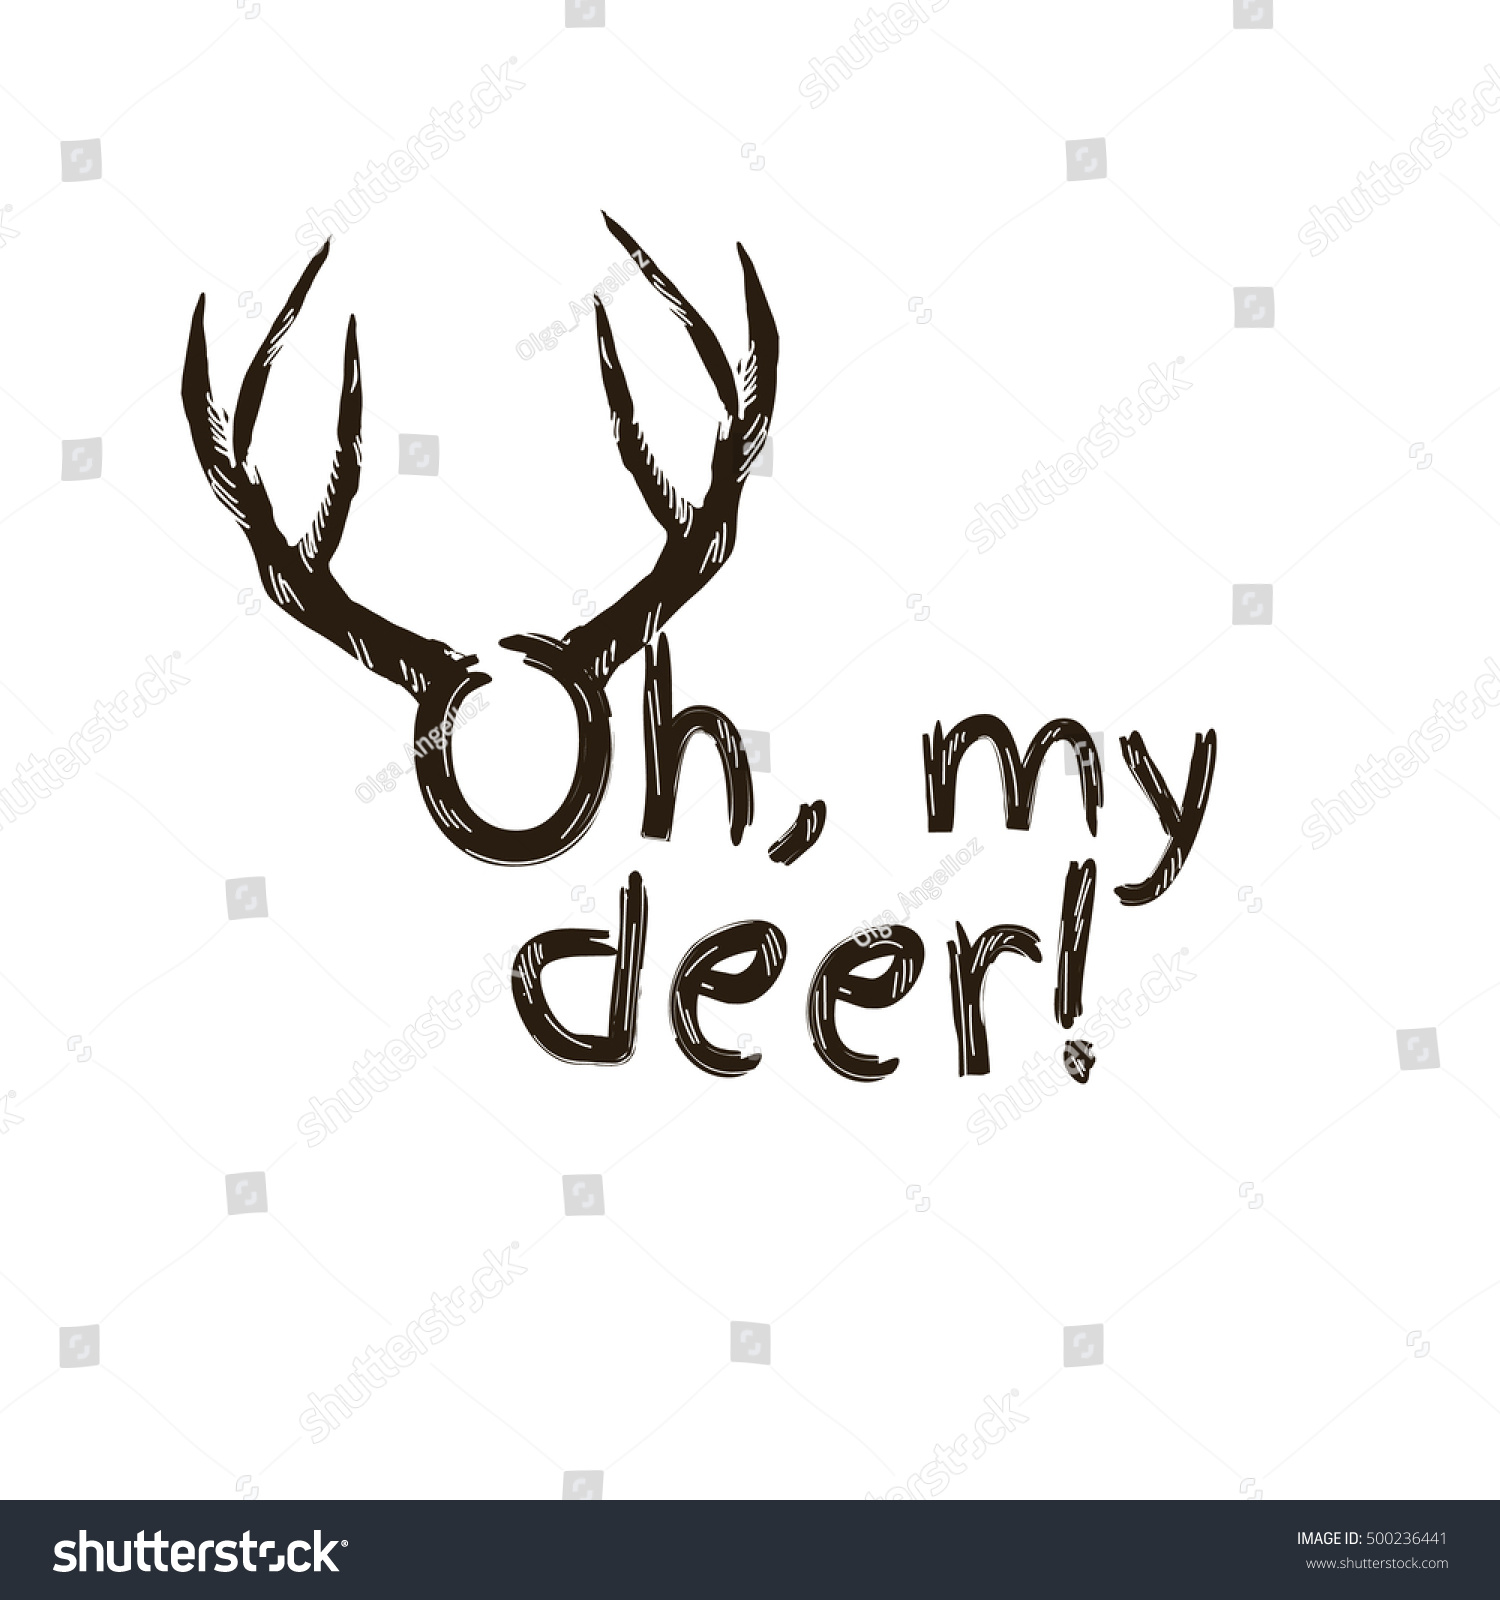 Image result for oh the horns